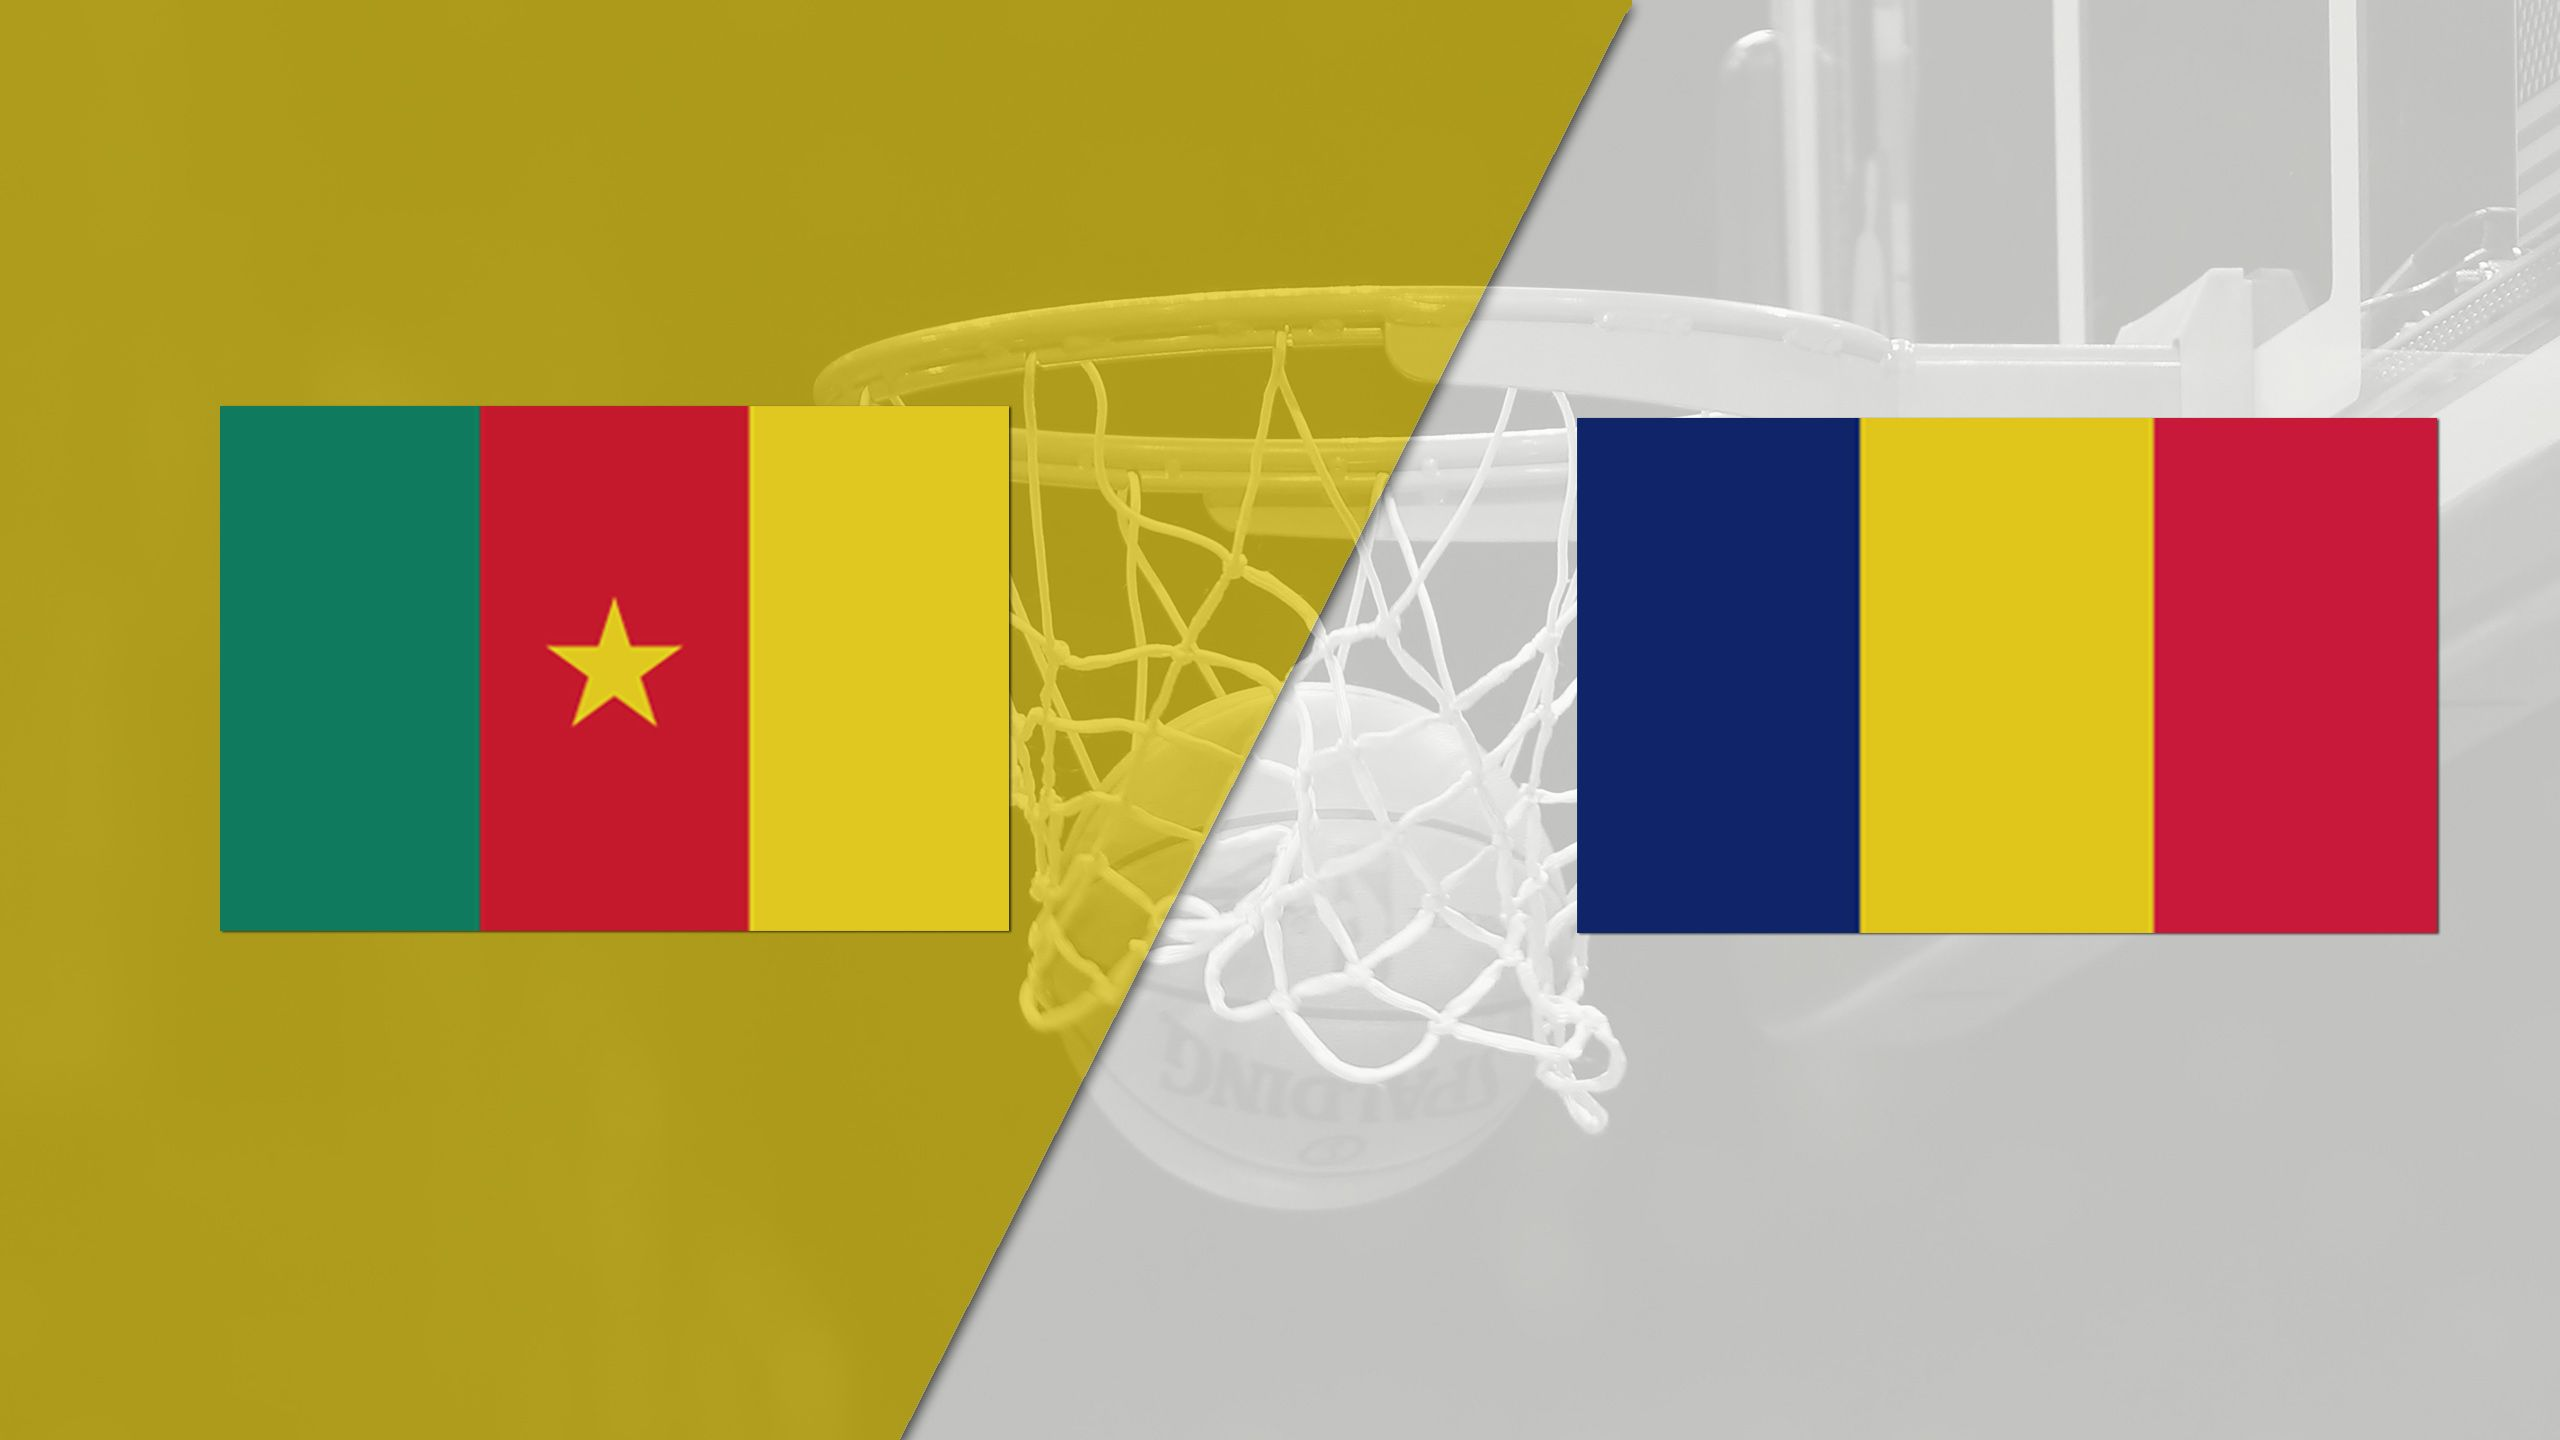 Cameroon vs. Chad (FIBA World Cup 2019 Qualifier)